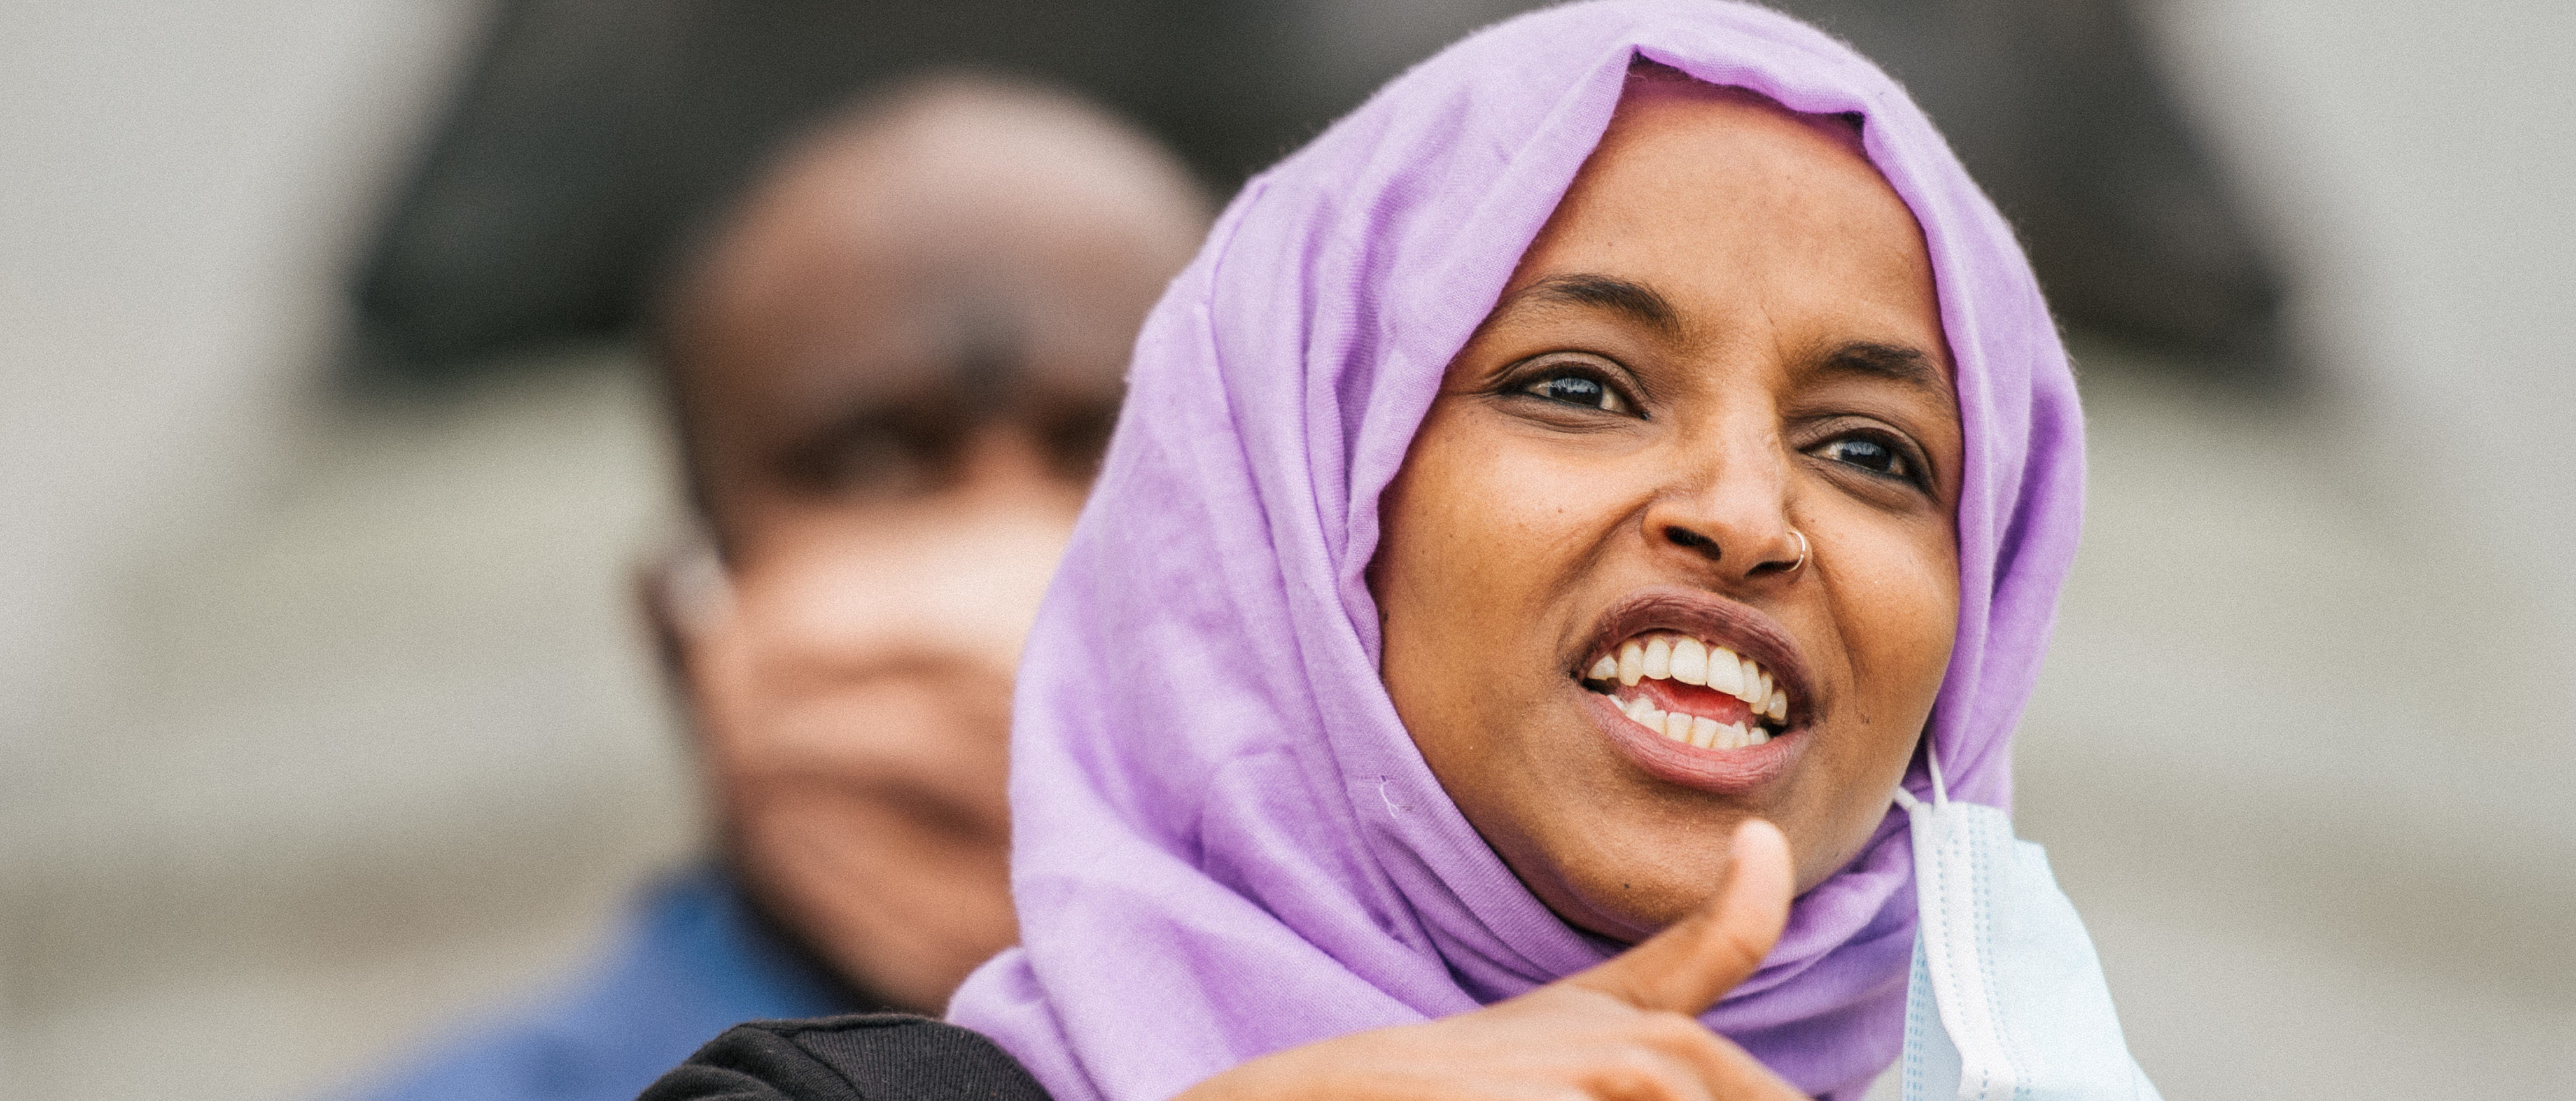 U.S. Rep. Ihan Omar (D-MN) speaks during a press conference on July 7, 2020 in St. Paul, Minnesota. (Brandon Bell/Getty Images)